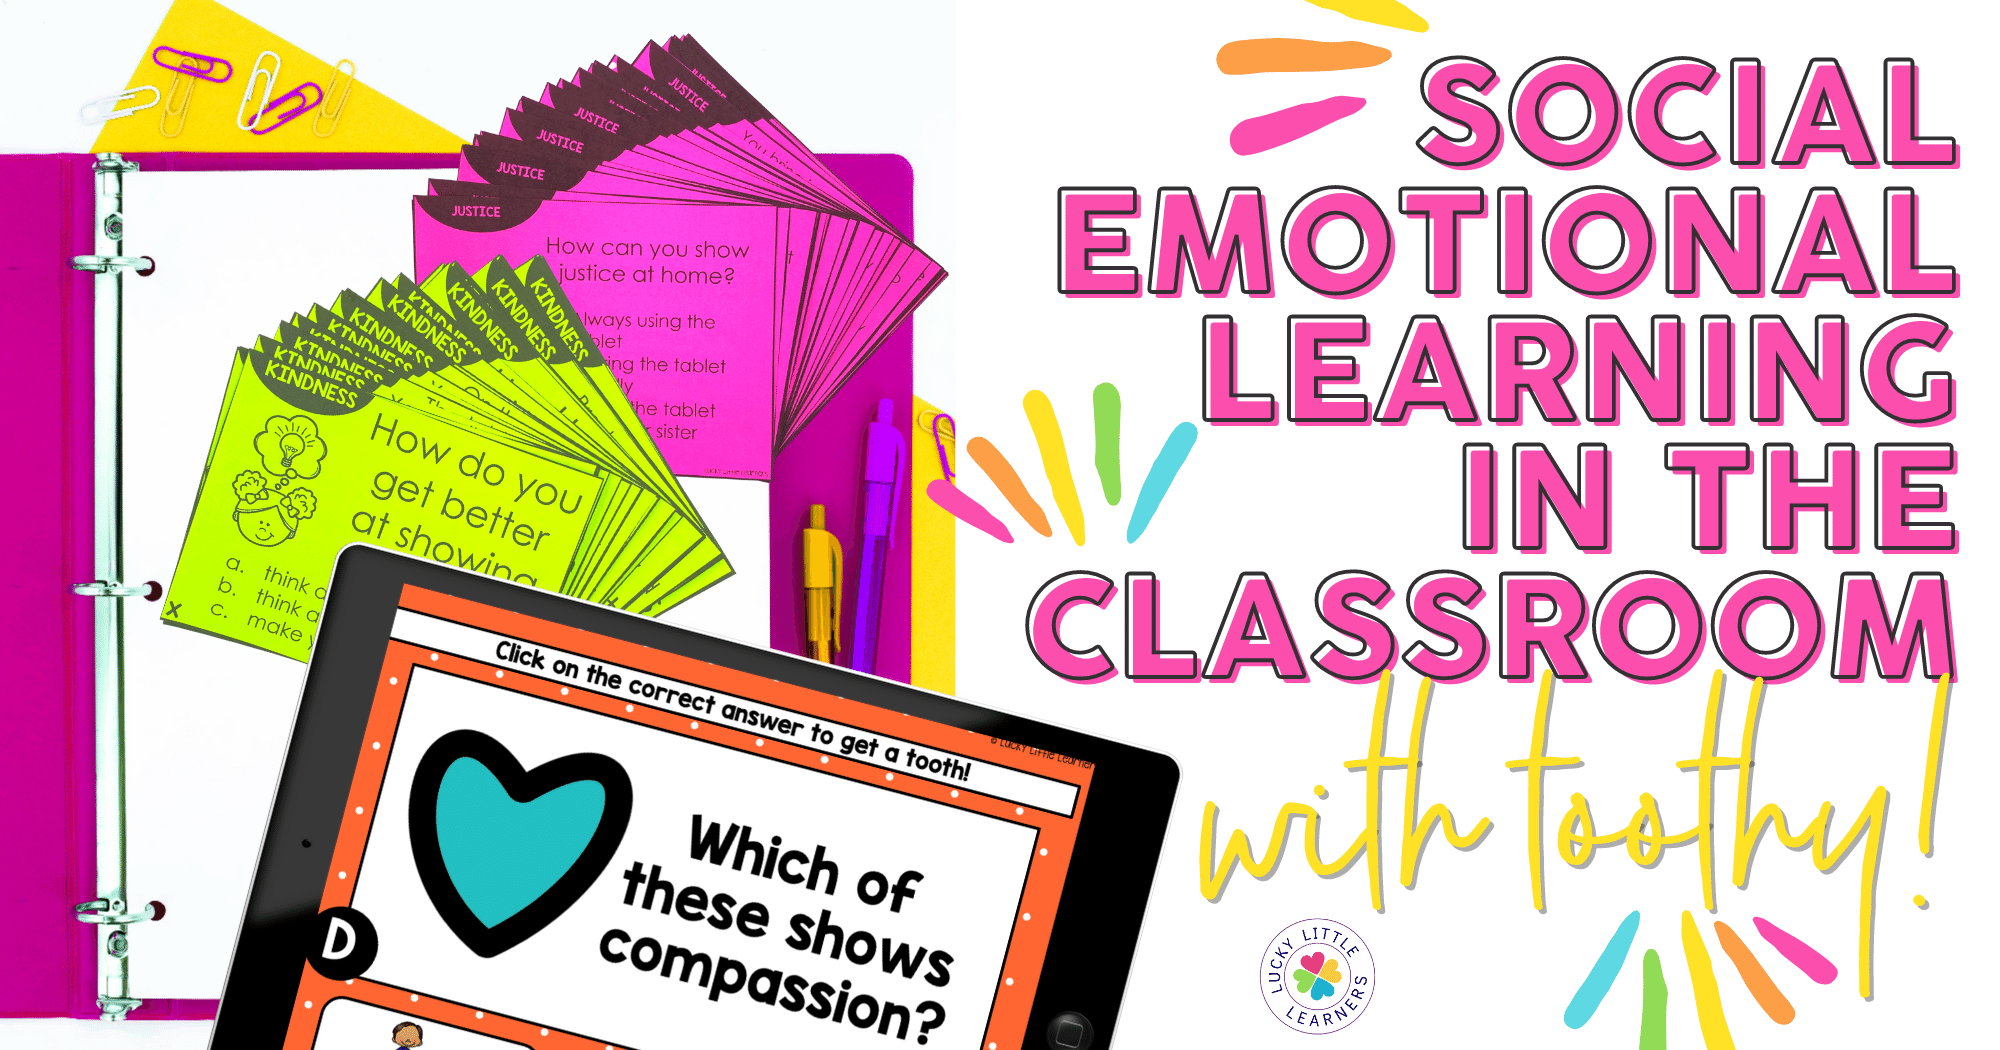 There are SO many ways to incorporate SEL into the classroom year round! If you need more SEL activities and resources to help cement these skills? Check out the newest product from Lucky Little Learners: SEL Toothy!